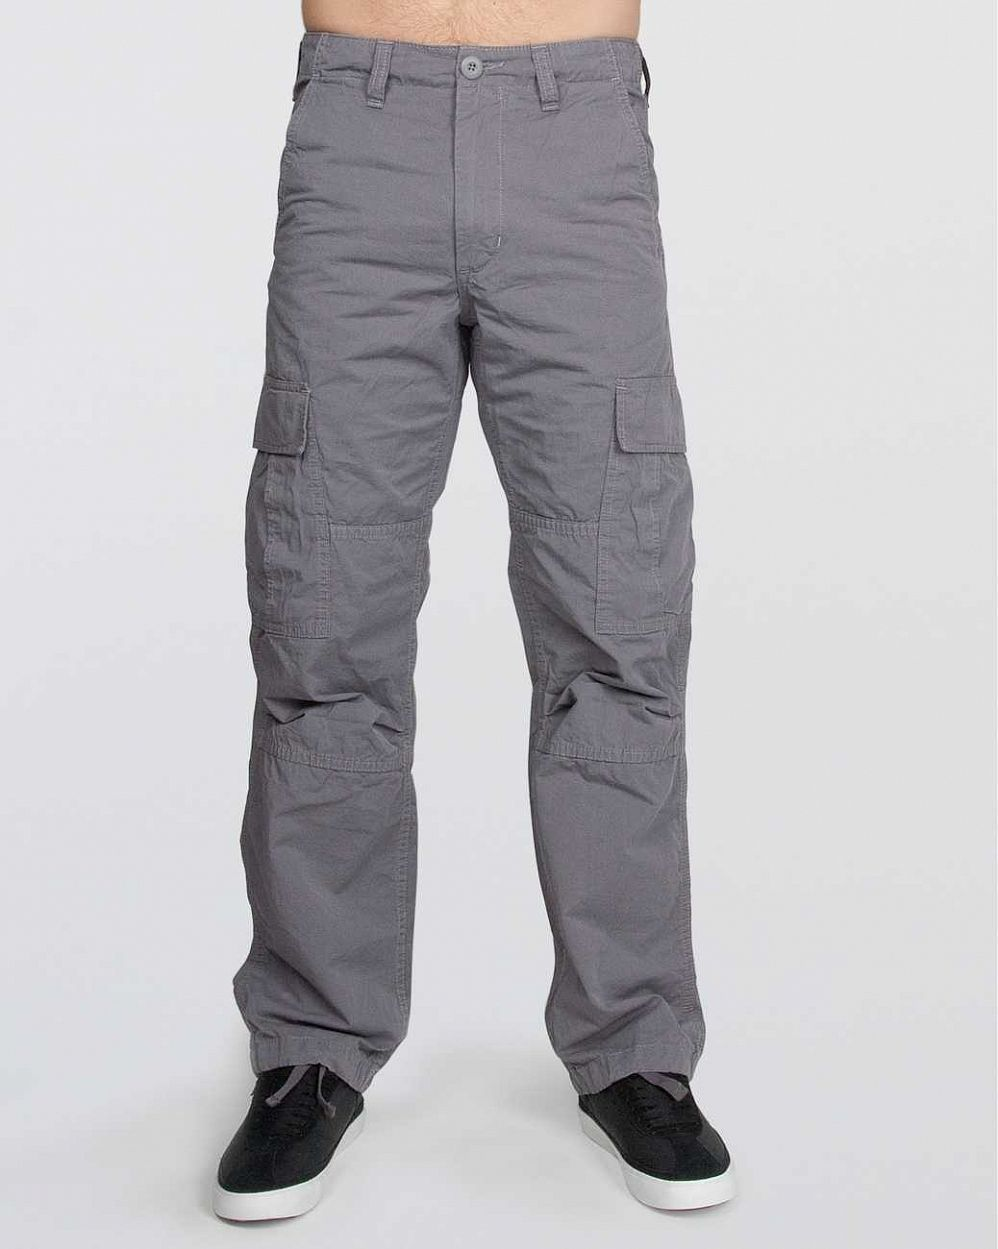 купить Брюки Carhartt Dude Pant Alamo Cotton Twill Compact Yarn 5,5 Oz Tin Stone Washed в Москве